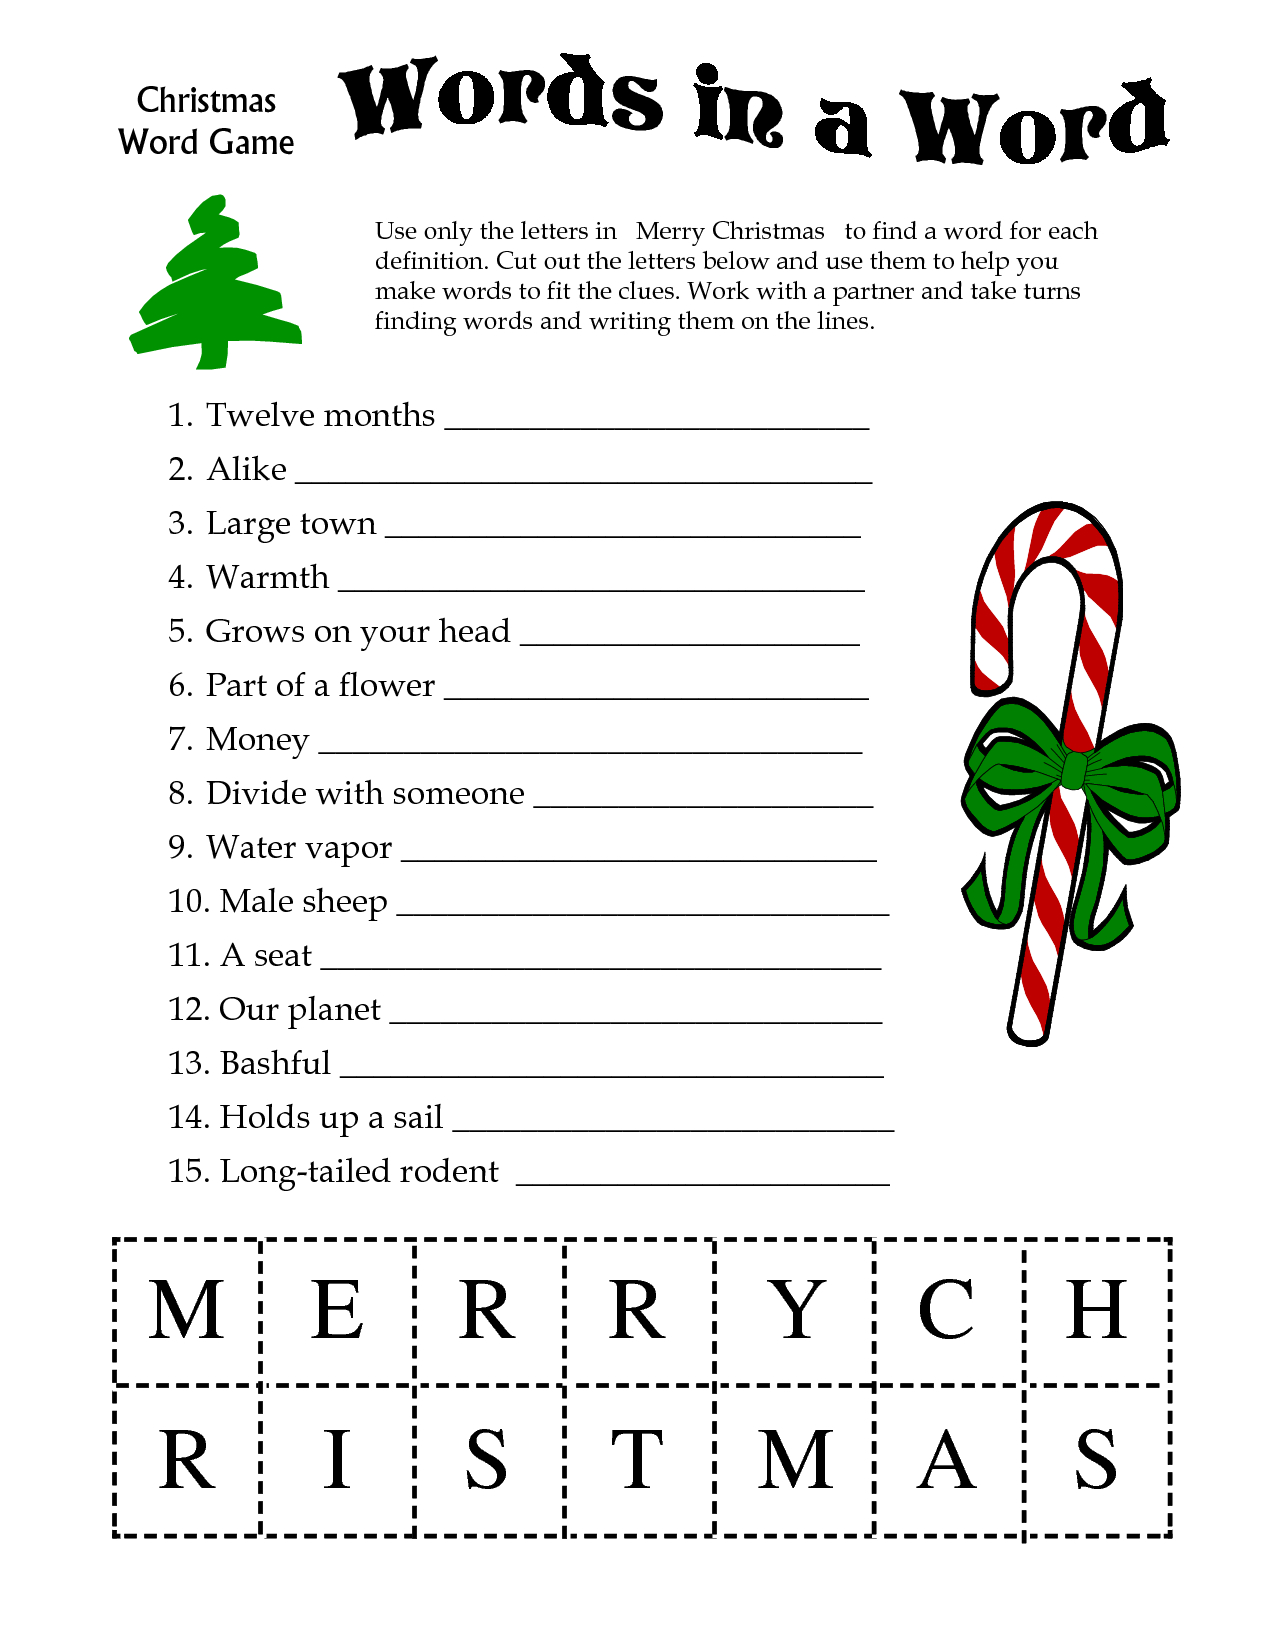 5 Images Of Free Printable Christmas Word Games | Printablee - Free Printable Picture Dictionary For Kids